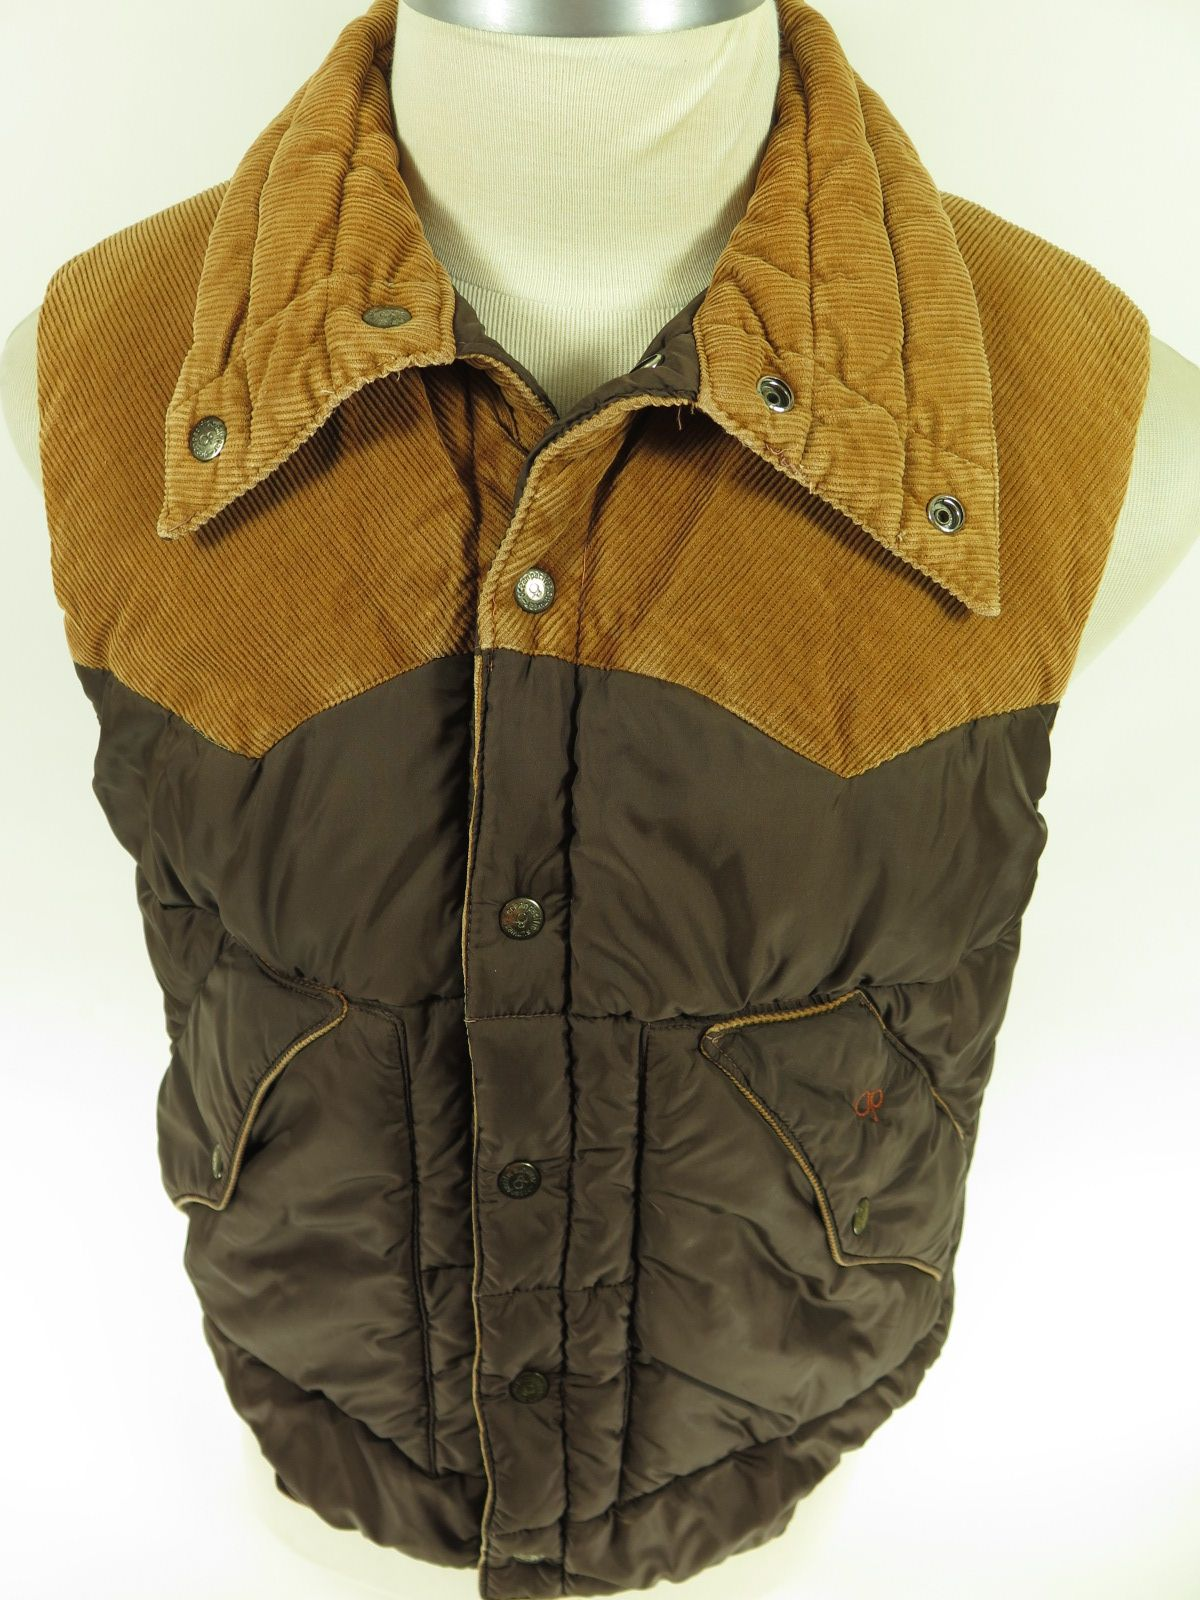 Op Ocean Pacific Puffy Puffer Style Winter Vest With Corduroy Western Accents Find More Like It At The Clothing Vault Clothes Vintage Outfits Mens Tops [ 1600 x 1200 Pixel ]